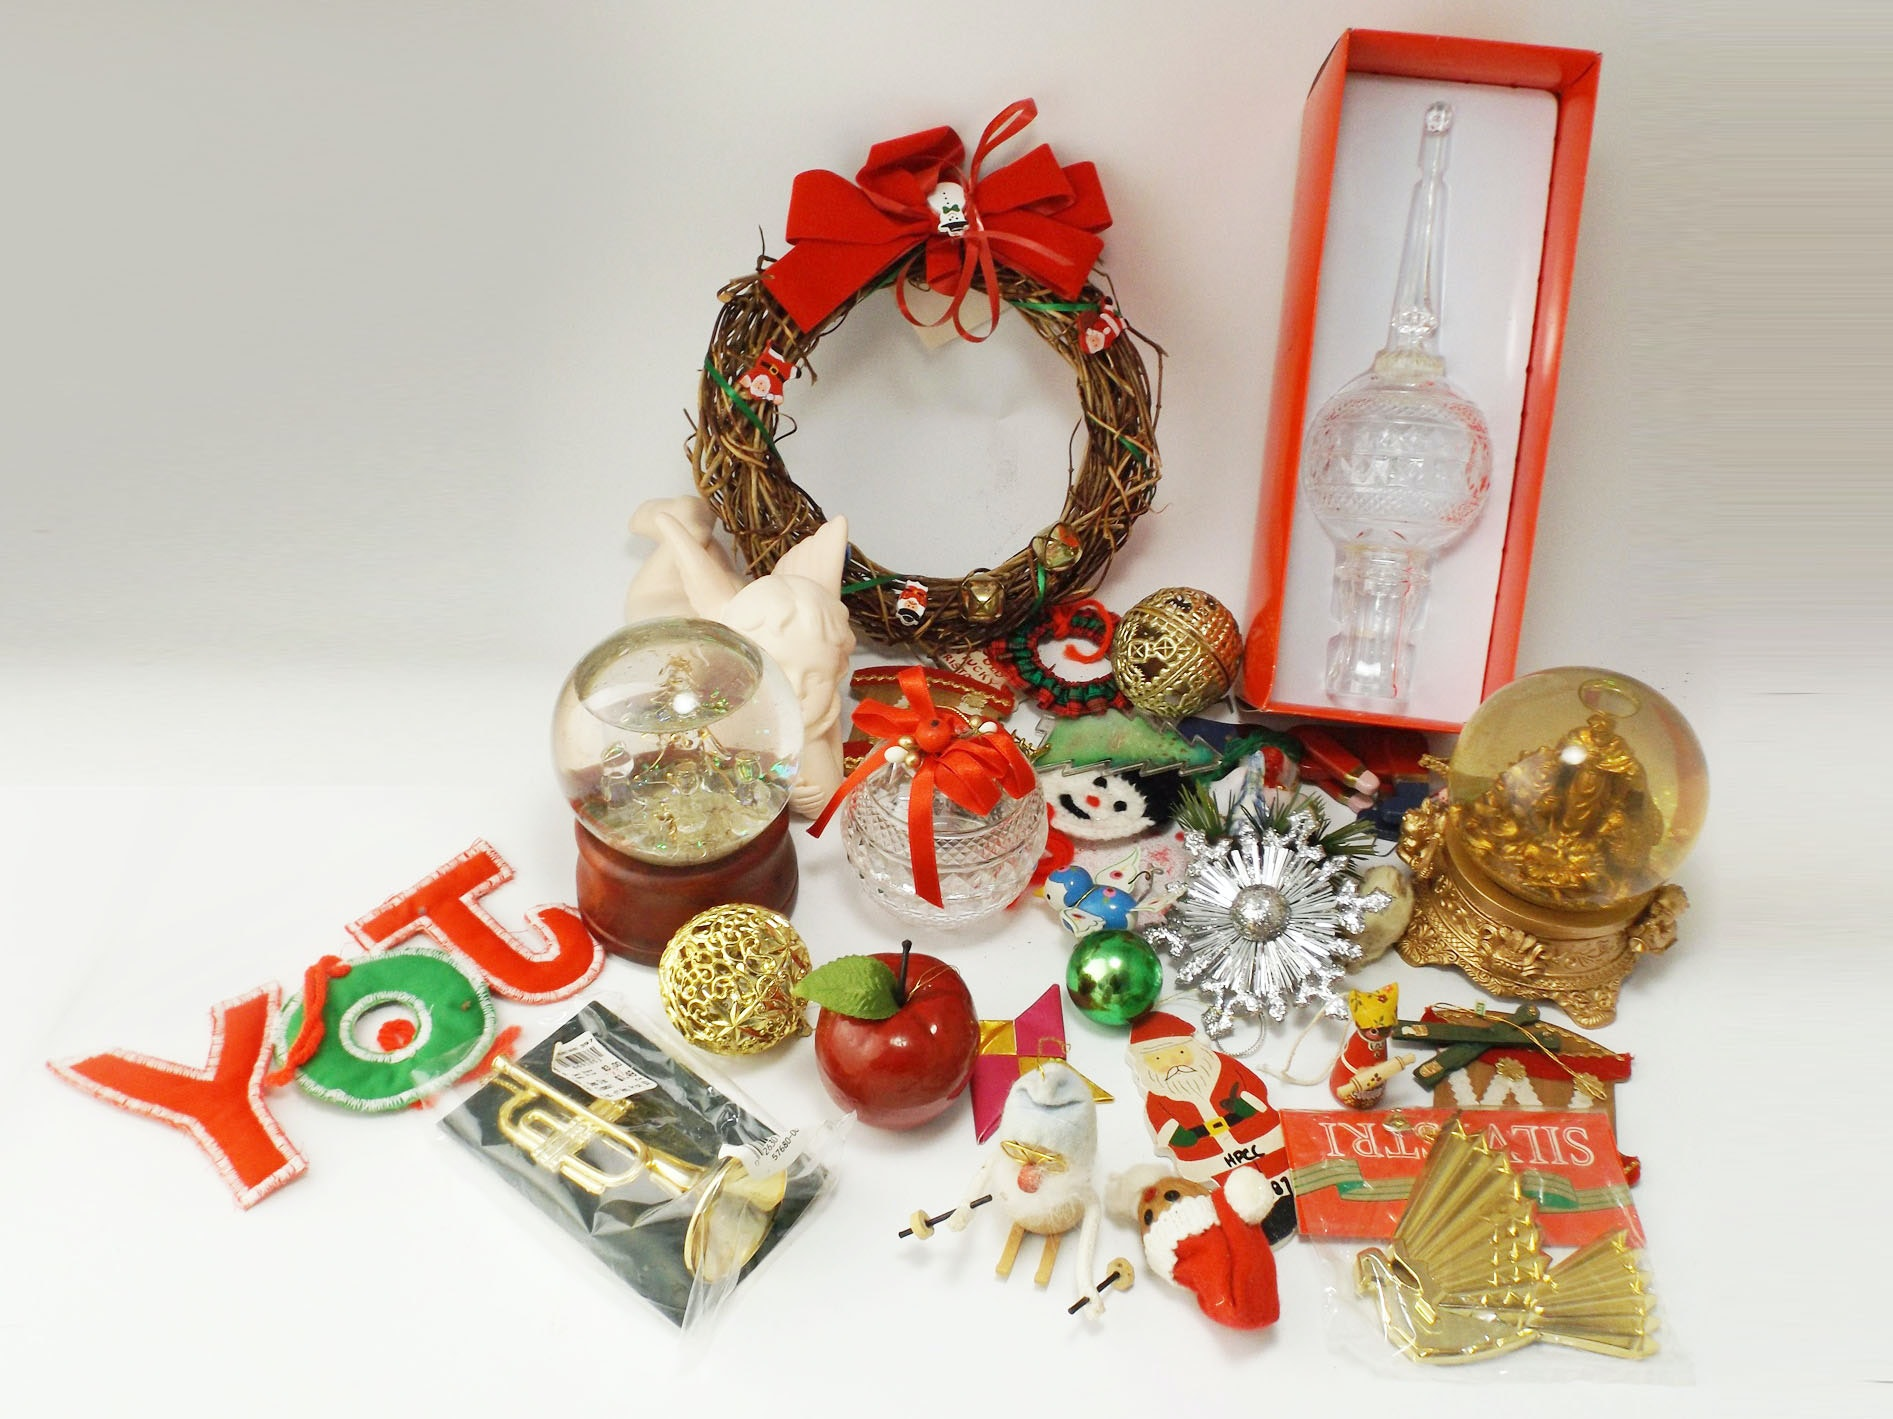 christmas hindu personals Worldfriends is where you come to make new friends, explore new cultures, and just hang out meet your neighbors in the global village join worldfriends.